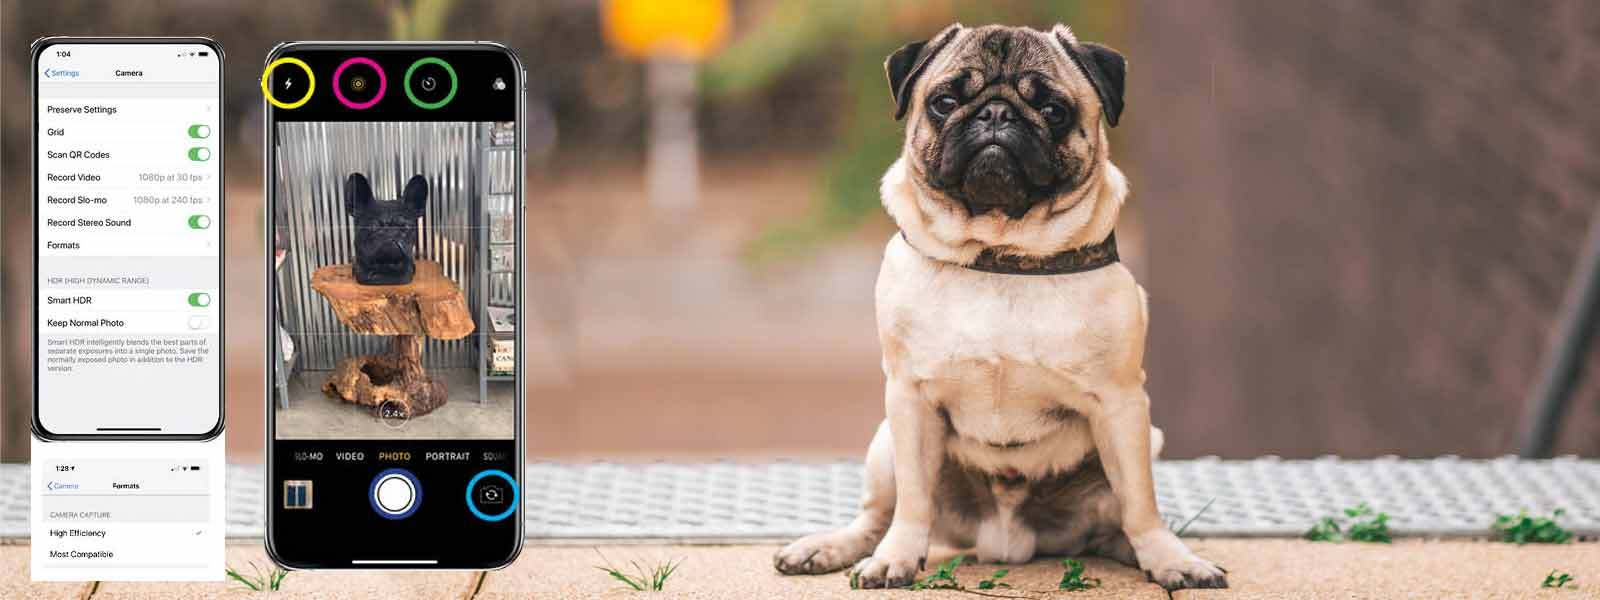 iPhone pictures of your dog